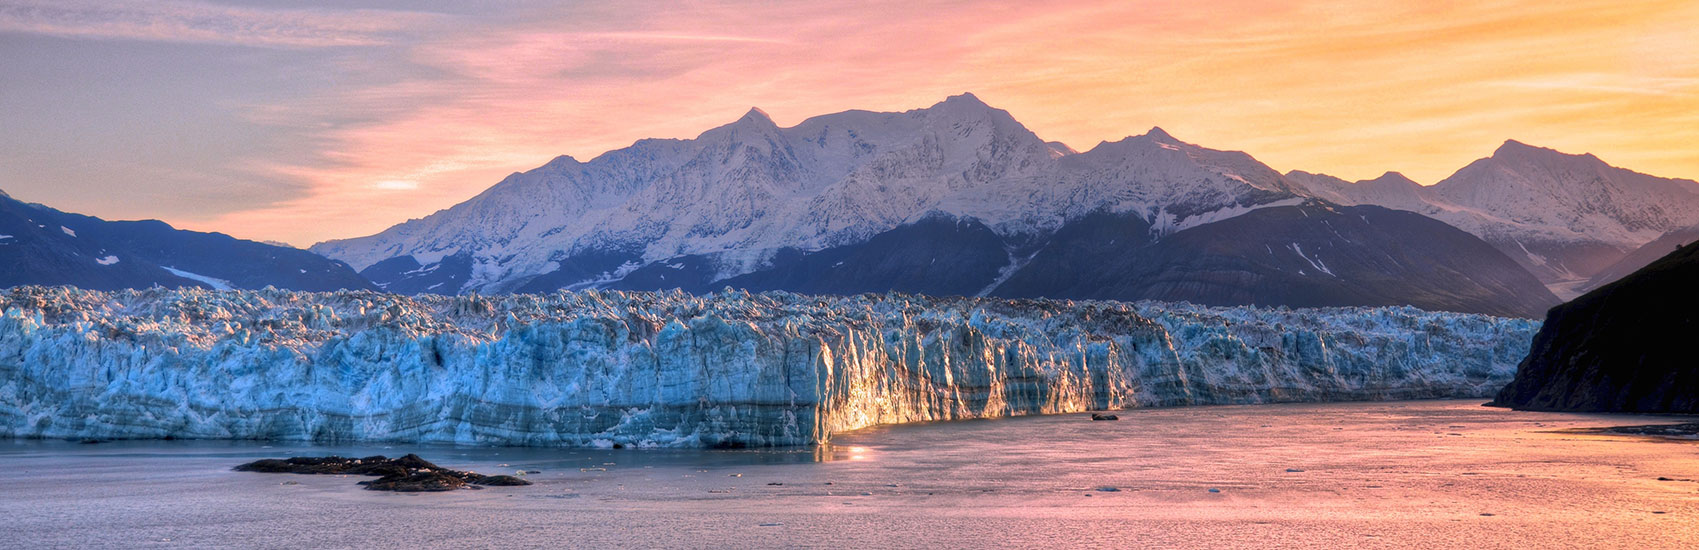 Limited Time Offer to Alaska with Holland America